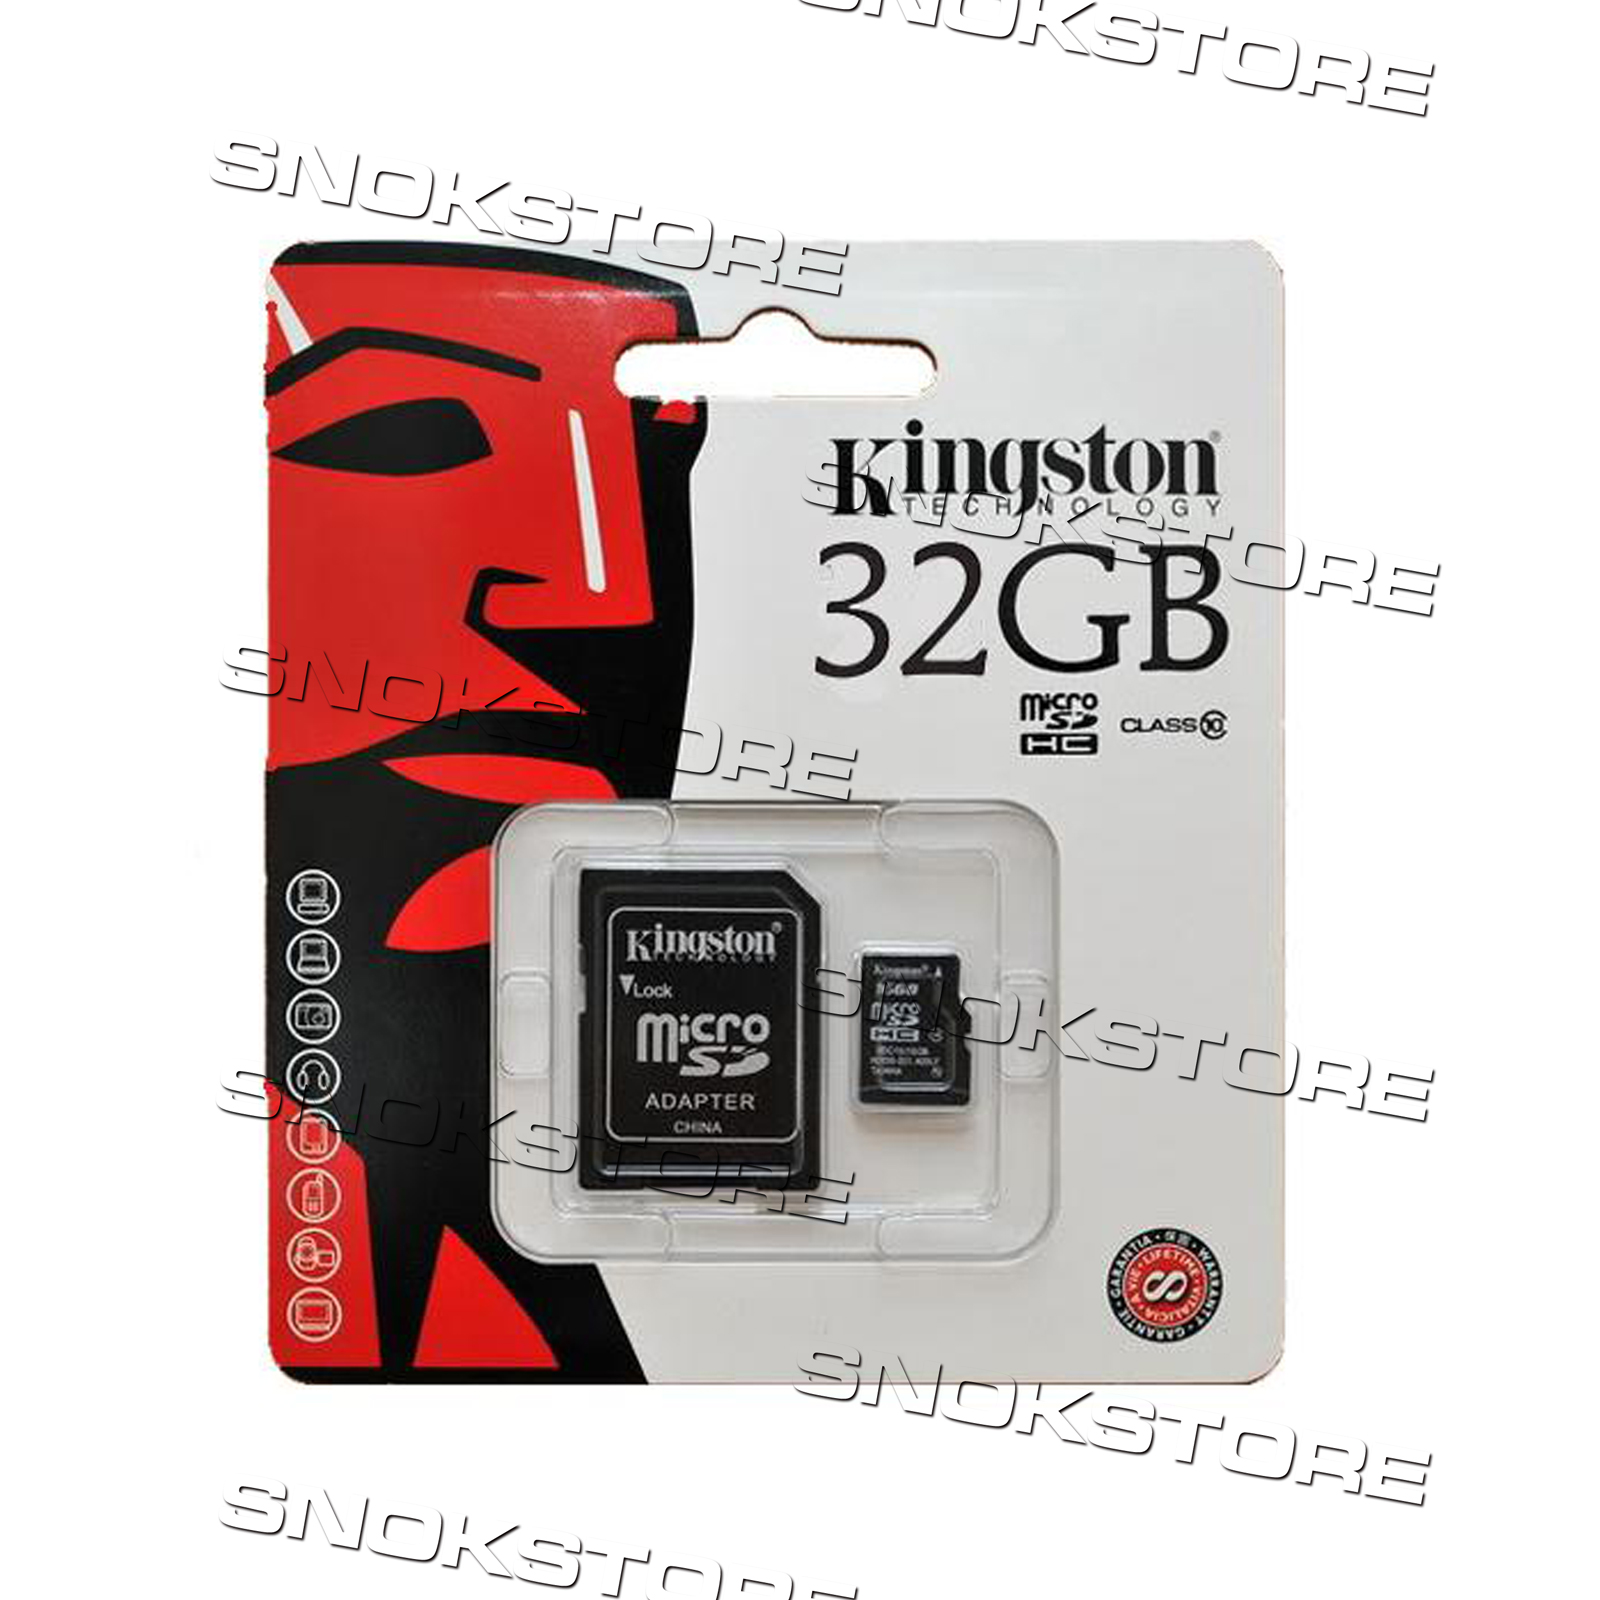 kingstone microsd 32bg classe 10 transflash micro sd 32 gb memory card sdhc ebay. Black Bedroom Furniture Sets. Home Design Ideas